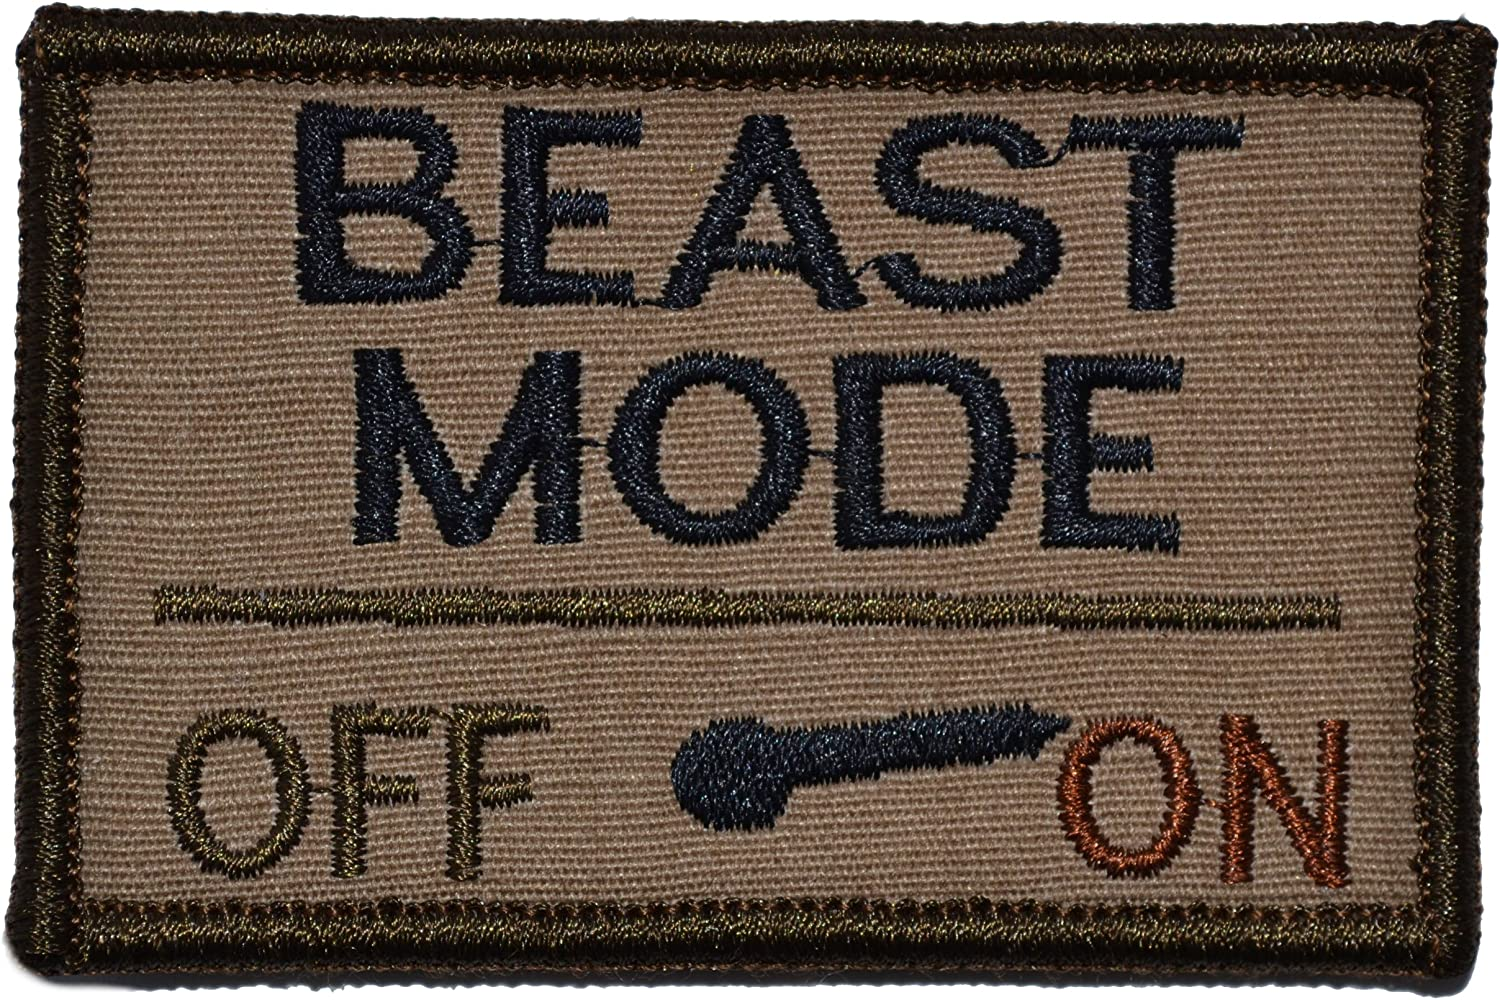 ASST COLORS AVAILABLE BEAST MODE Morale patch full hook backing